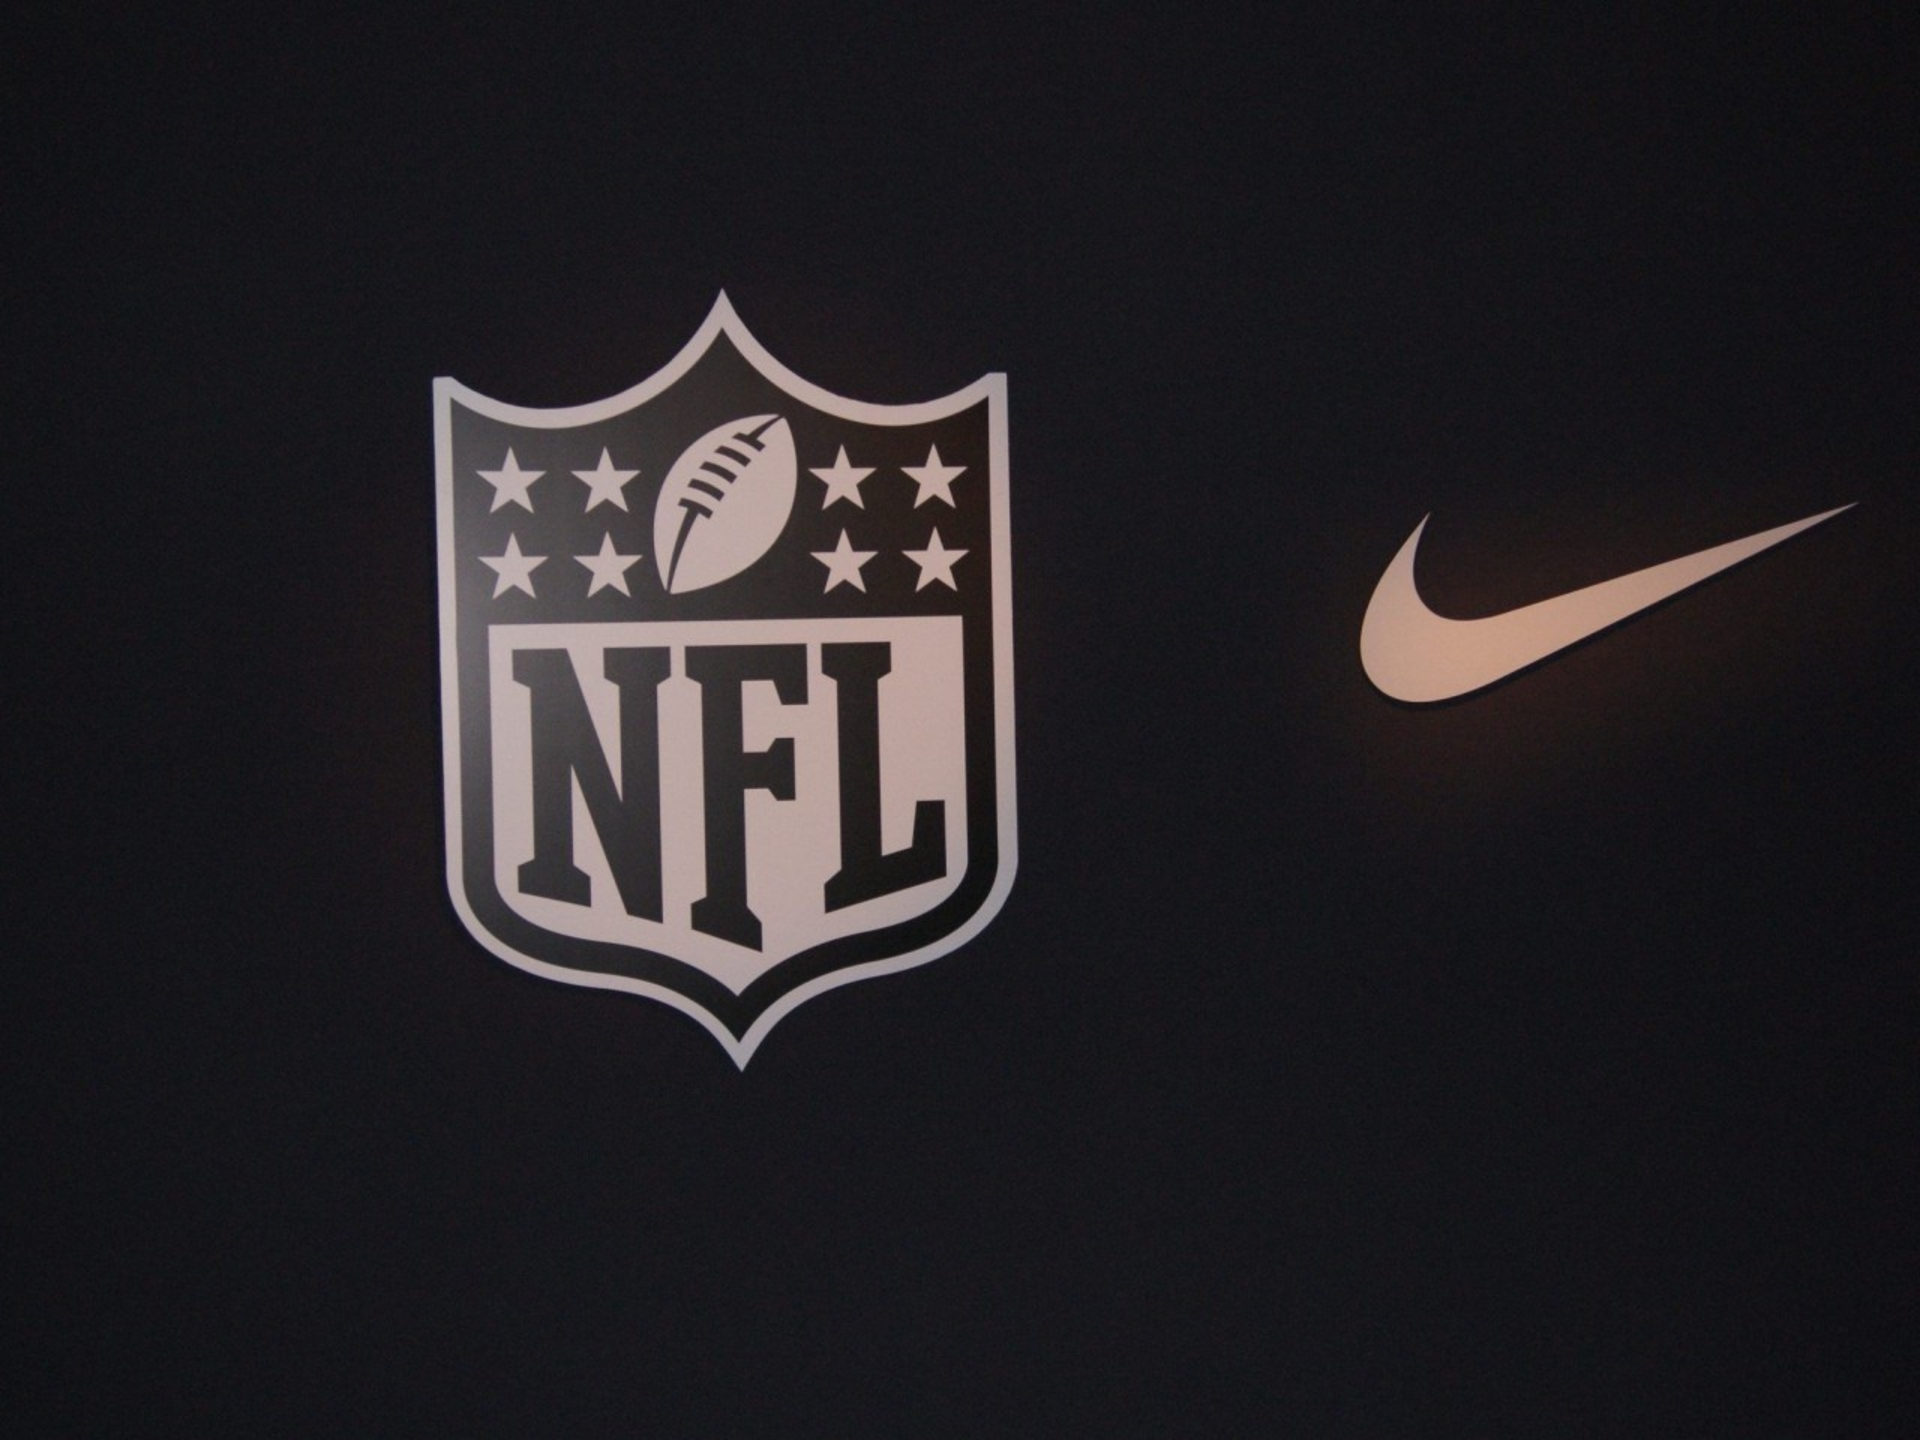 Download Nike Nfl Football Wallpaper Images amp Pictures Becuo 1920x1440